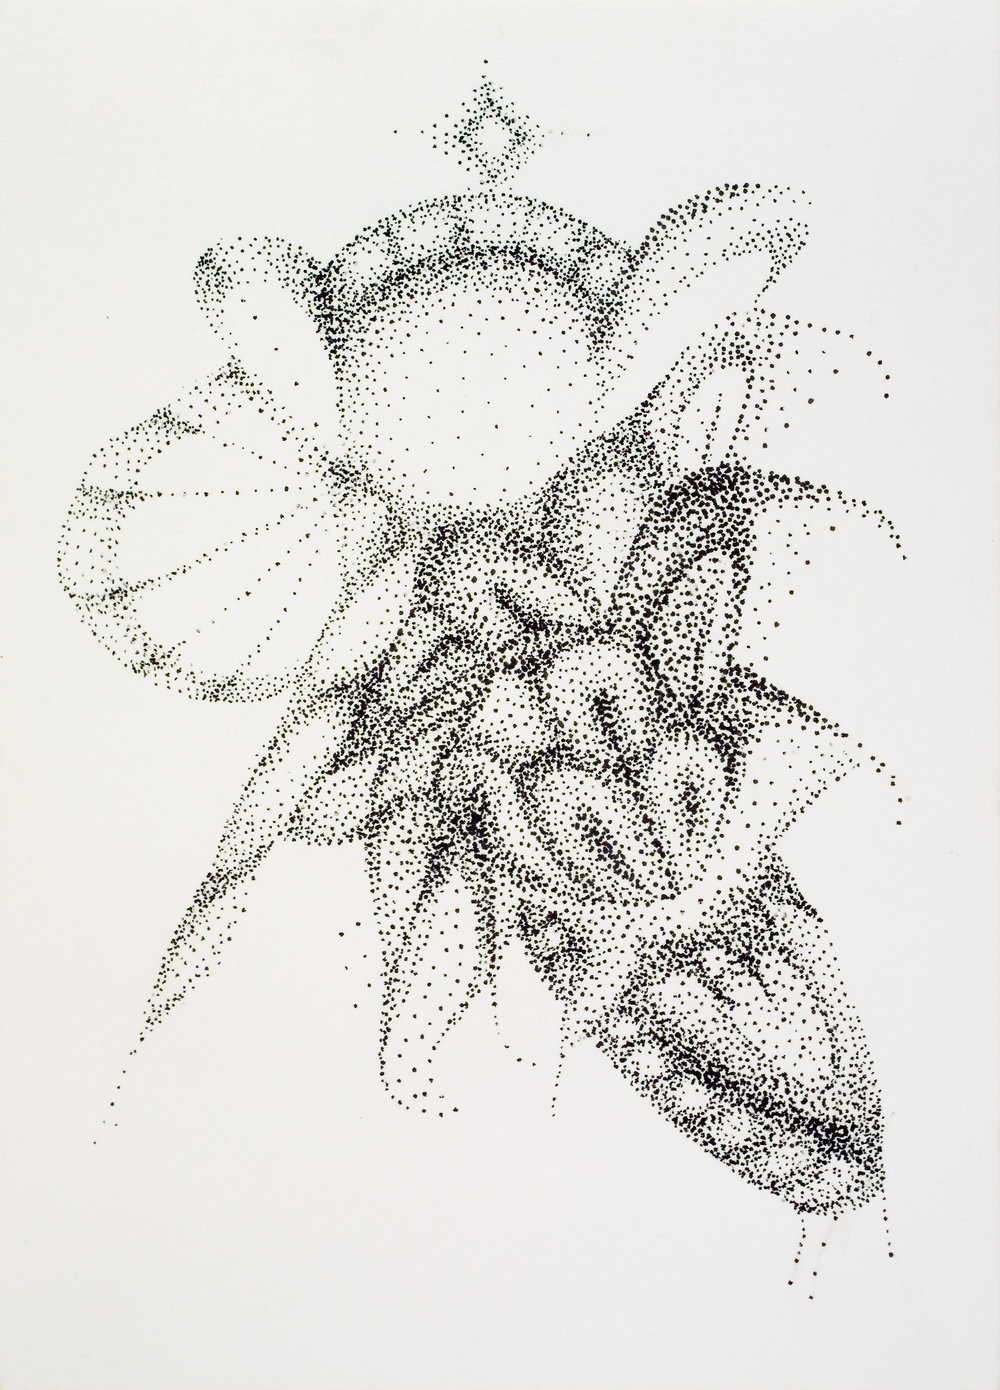 Honey Wish  Pen on paper, 8x6in.